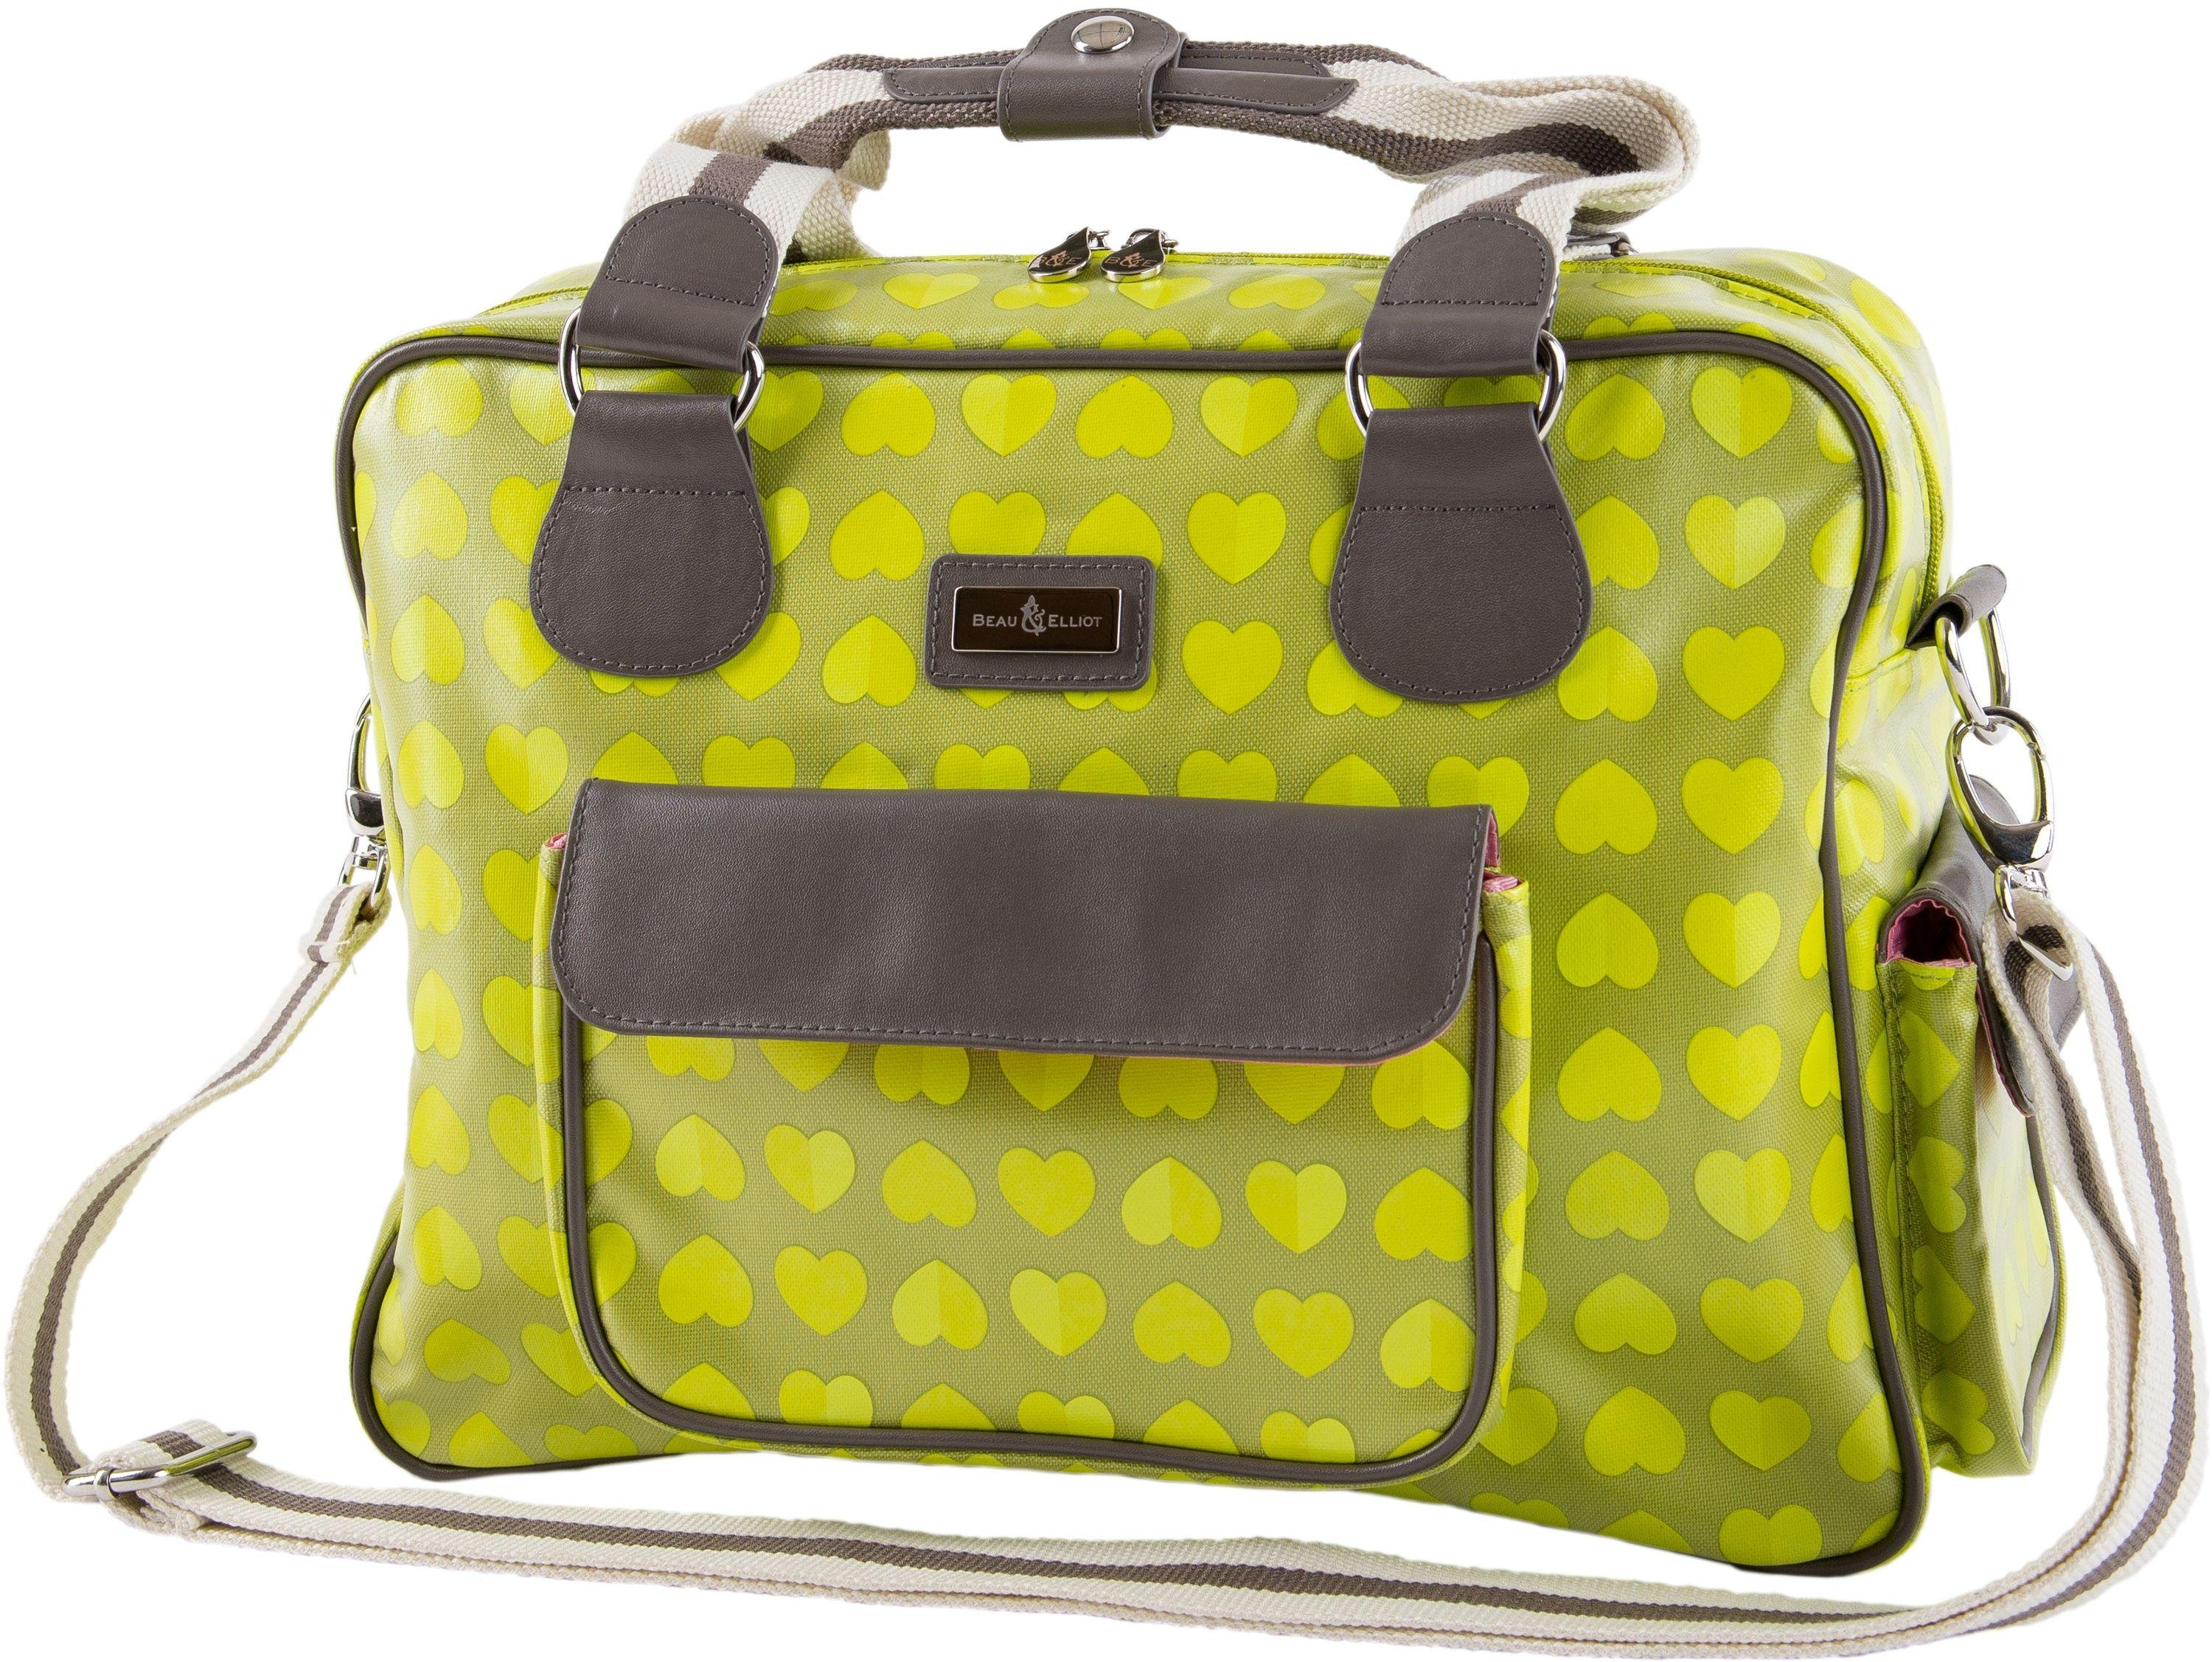 Image of Beau and Elliot Confetti Baby - Changing Bag - Lime